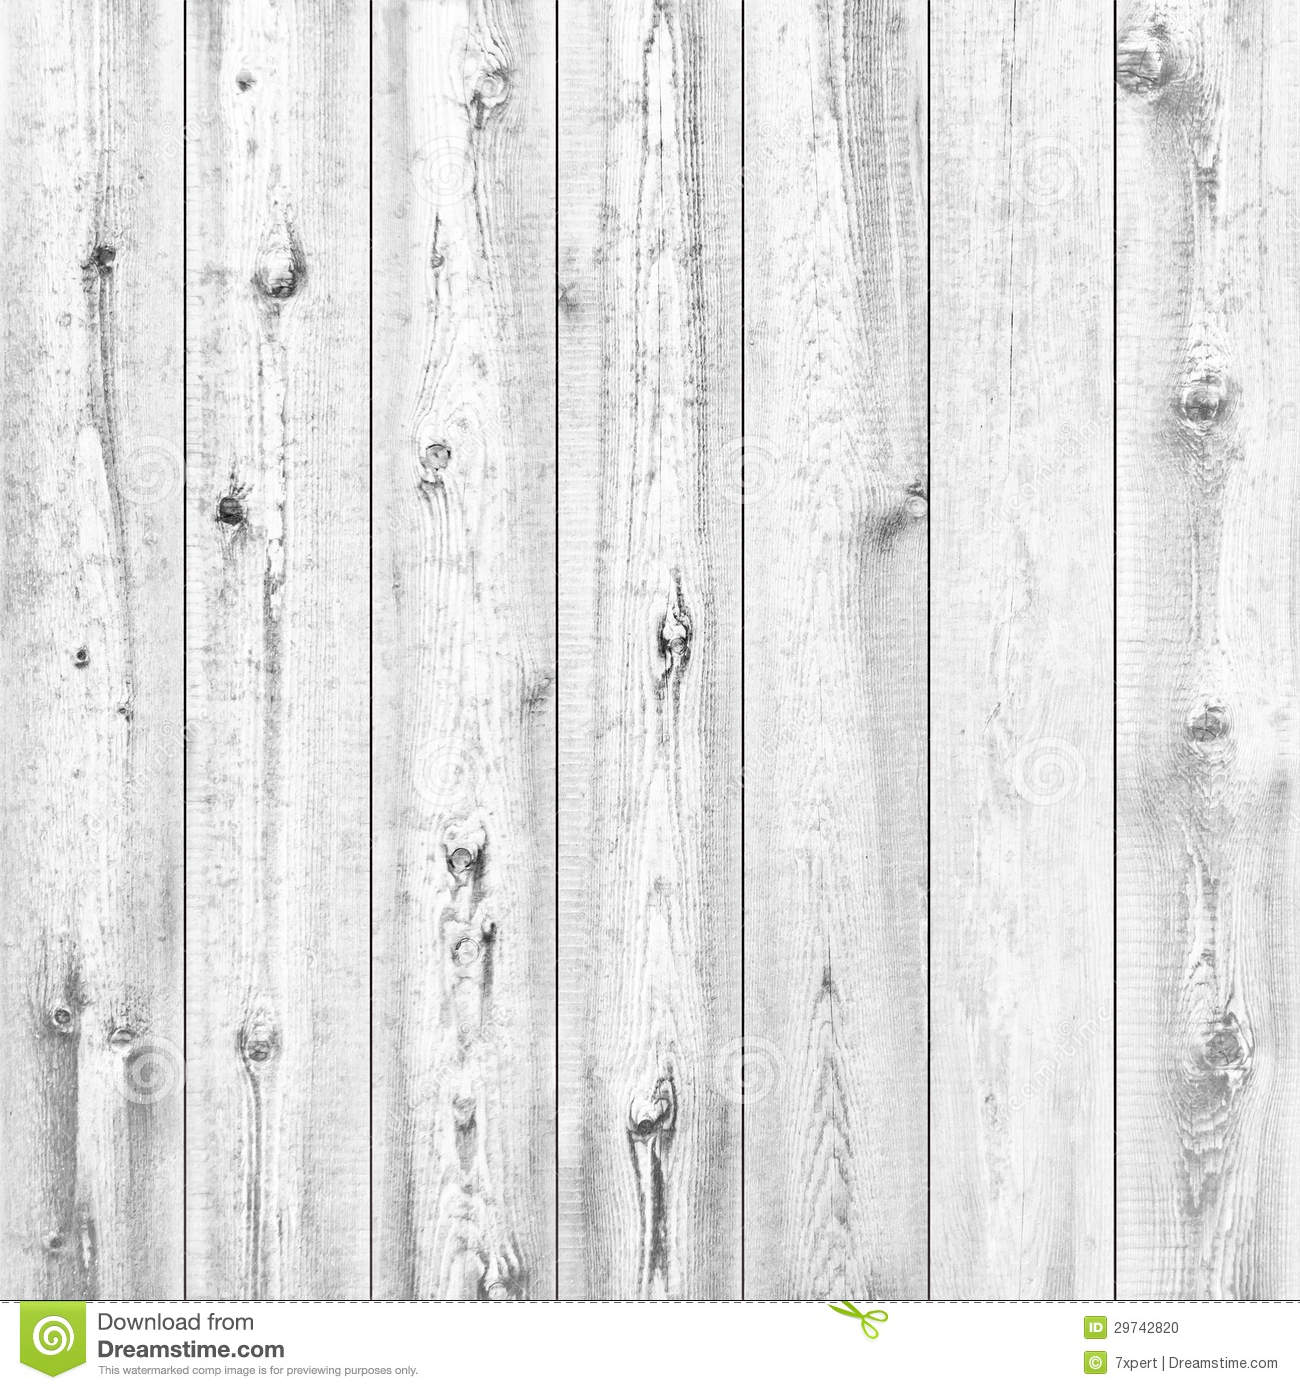 Black And White Wood Texture Stock Photo   Image  29742820